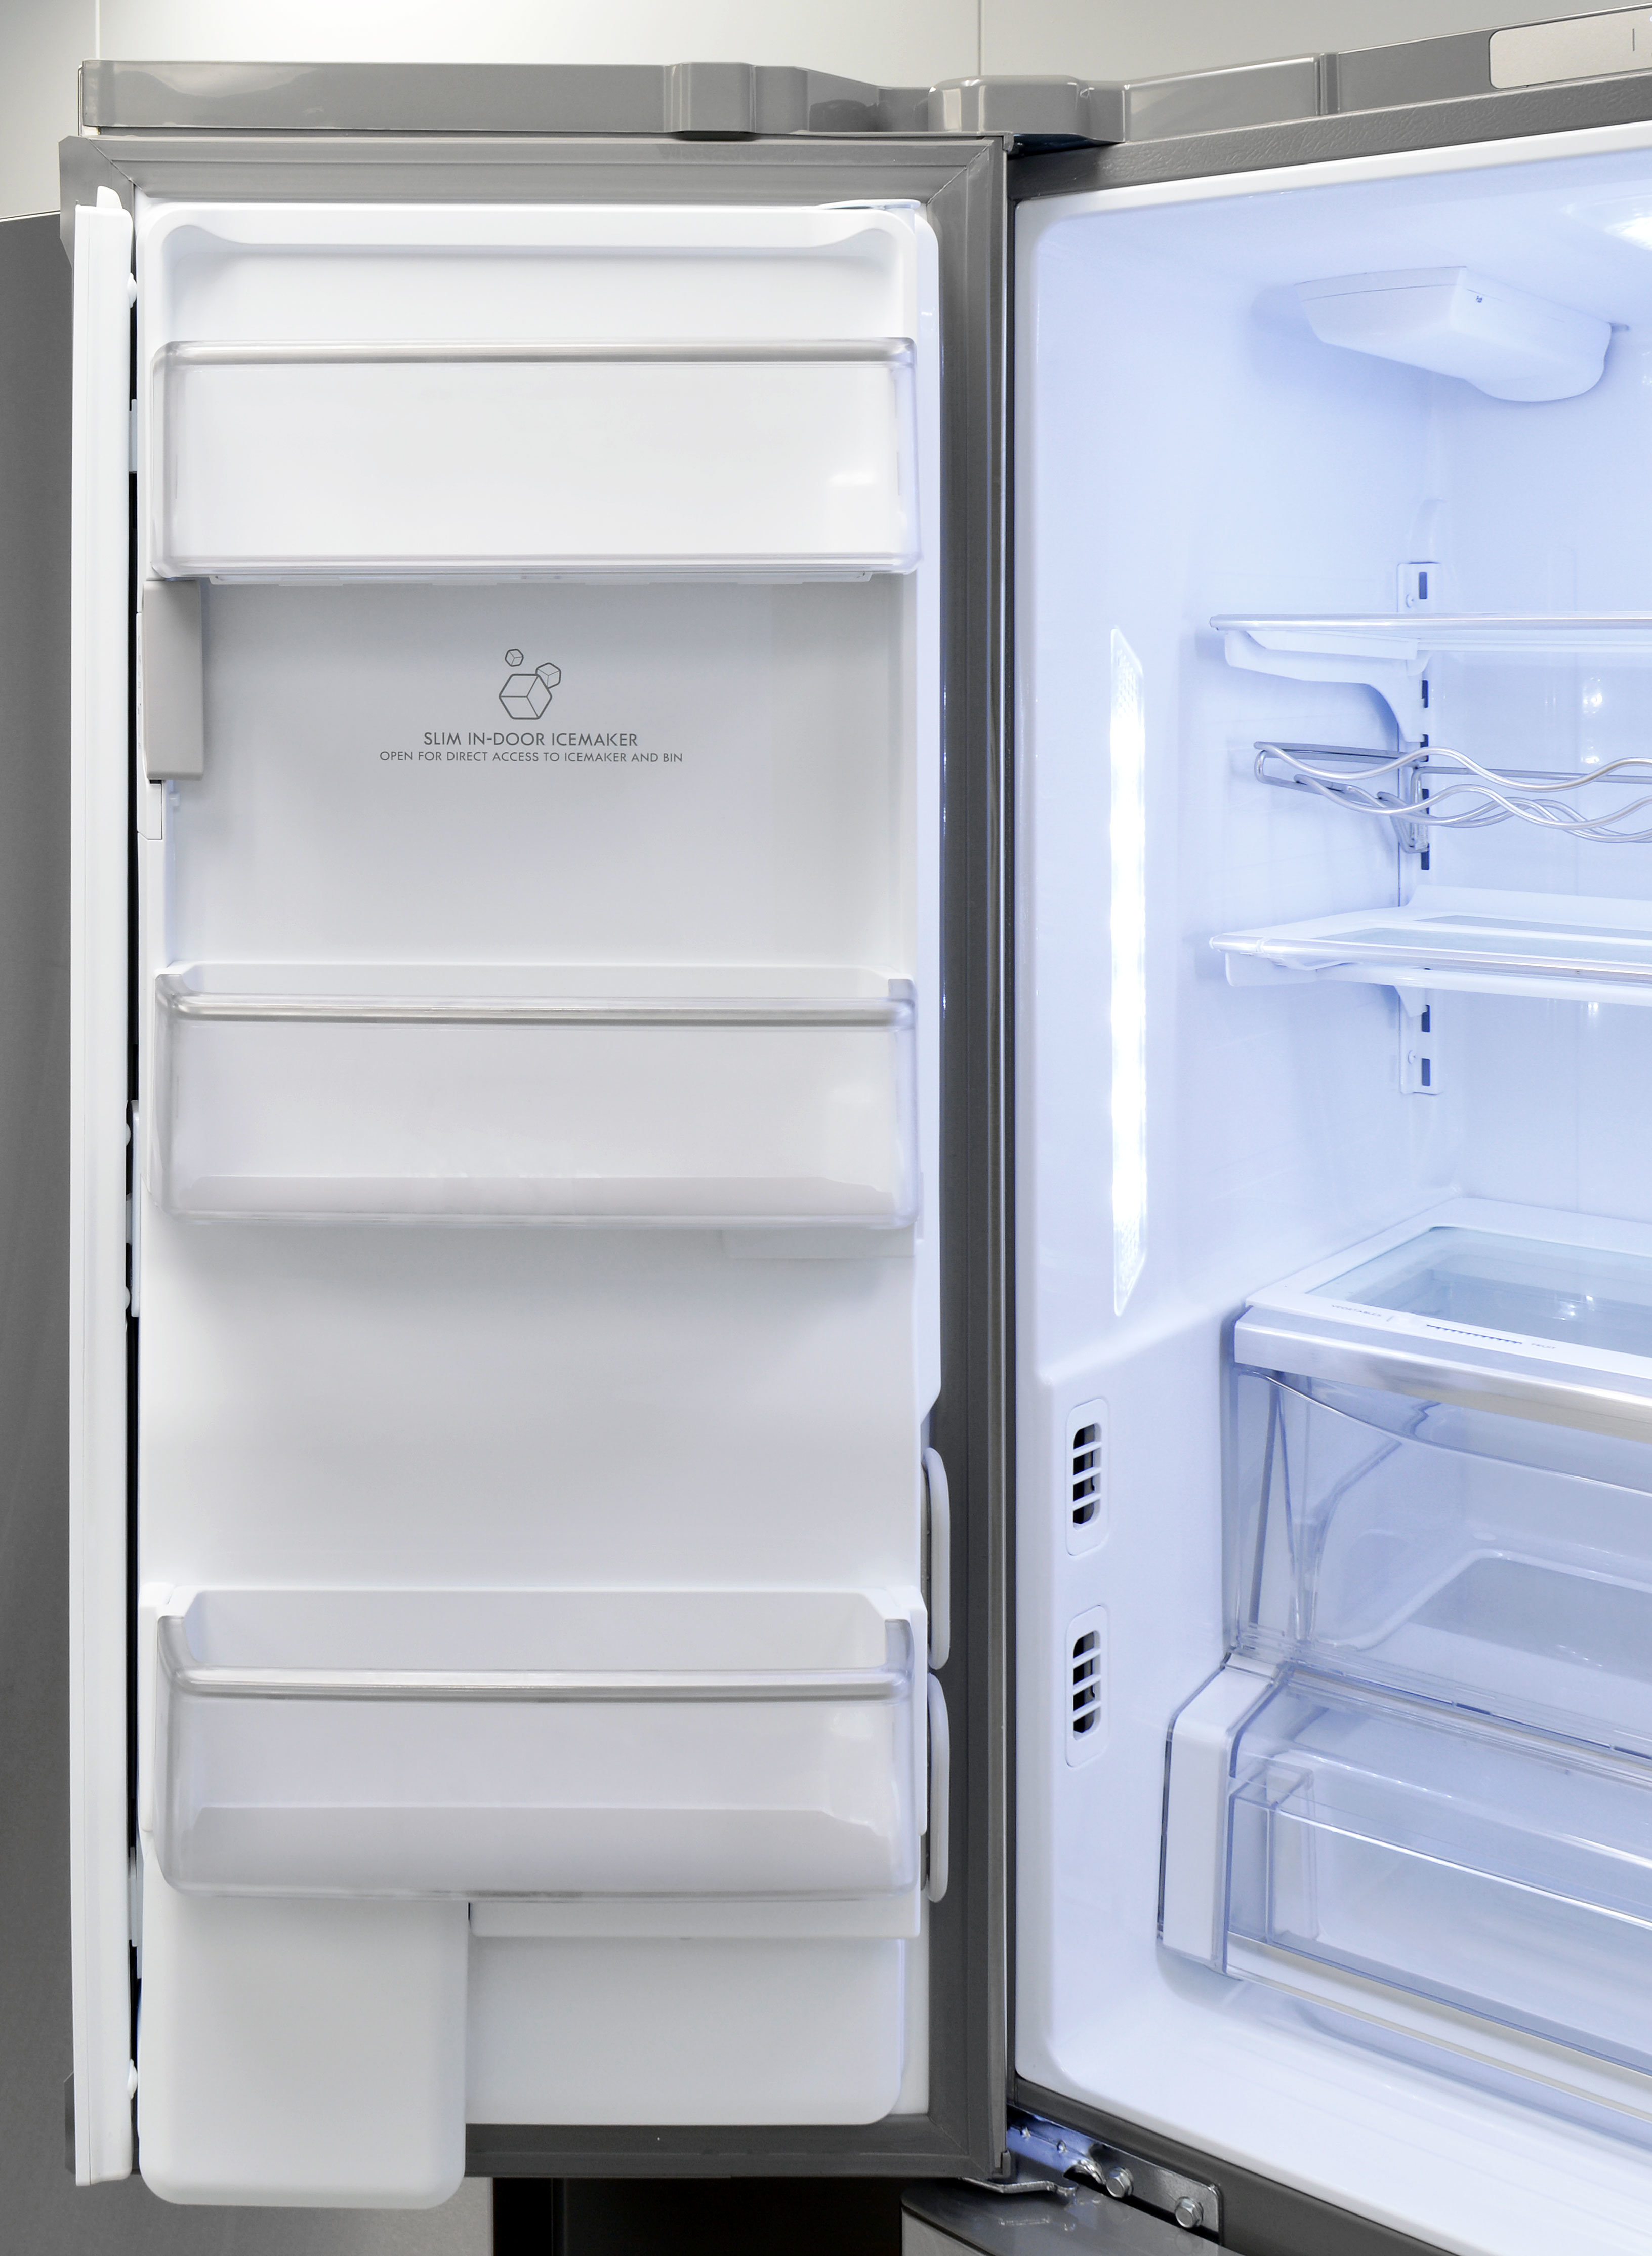 The Kenmore Pro 79993's left fridge door is home to both the ice maker and three shallow shelves.